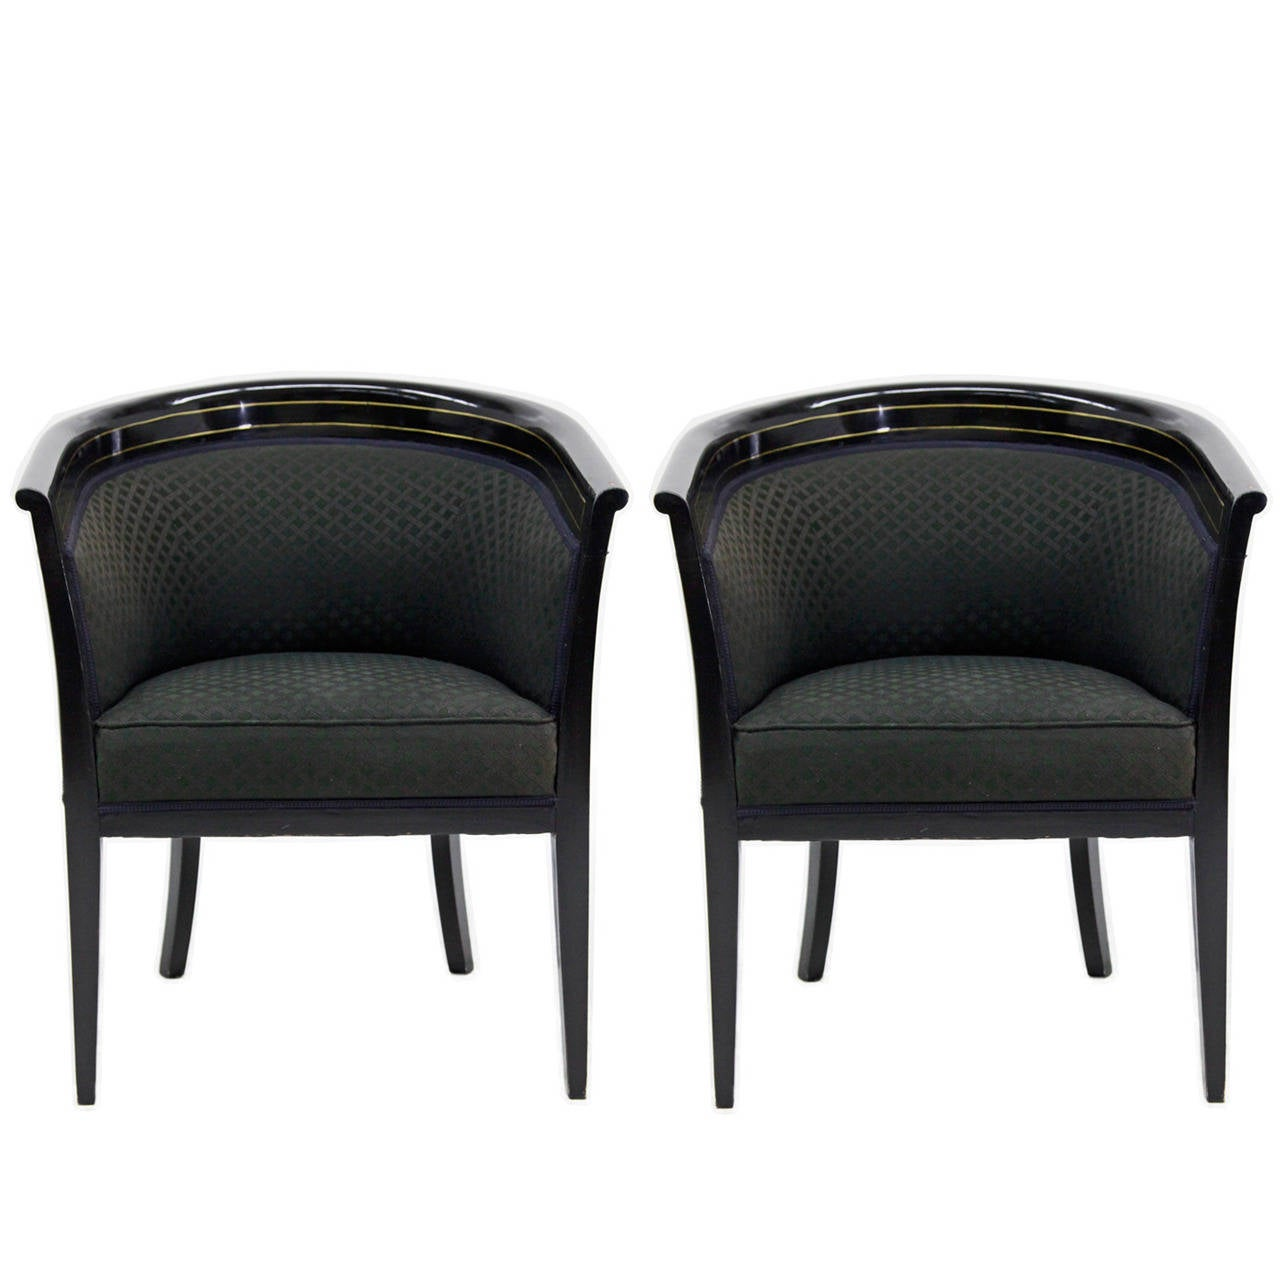 Elegant Pair of French Art Deco Armchairs, circa 1920s